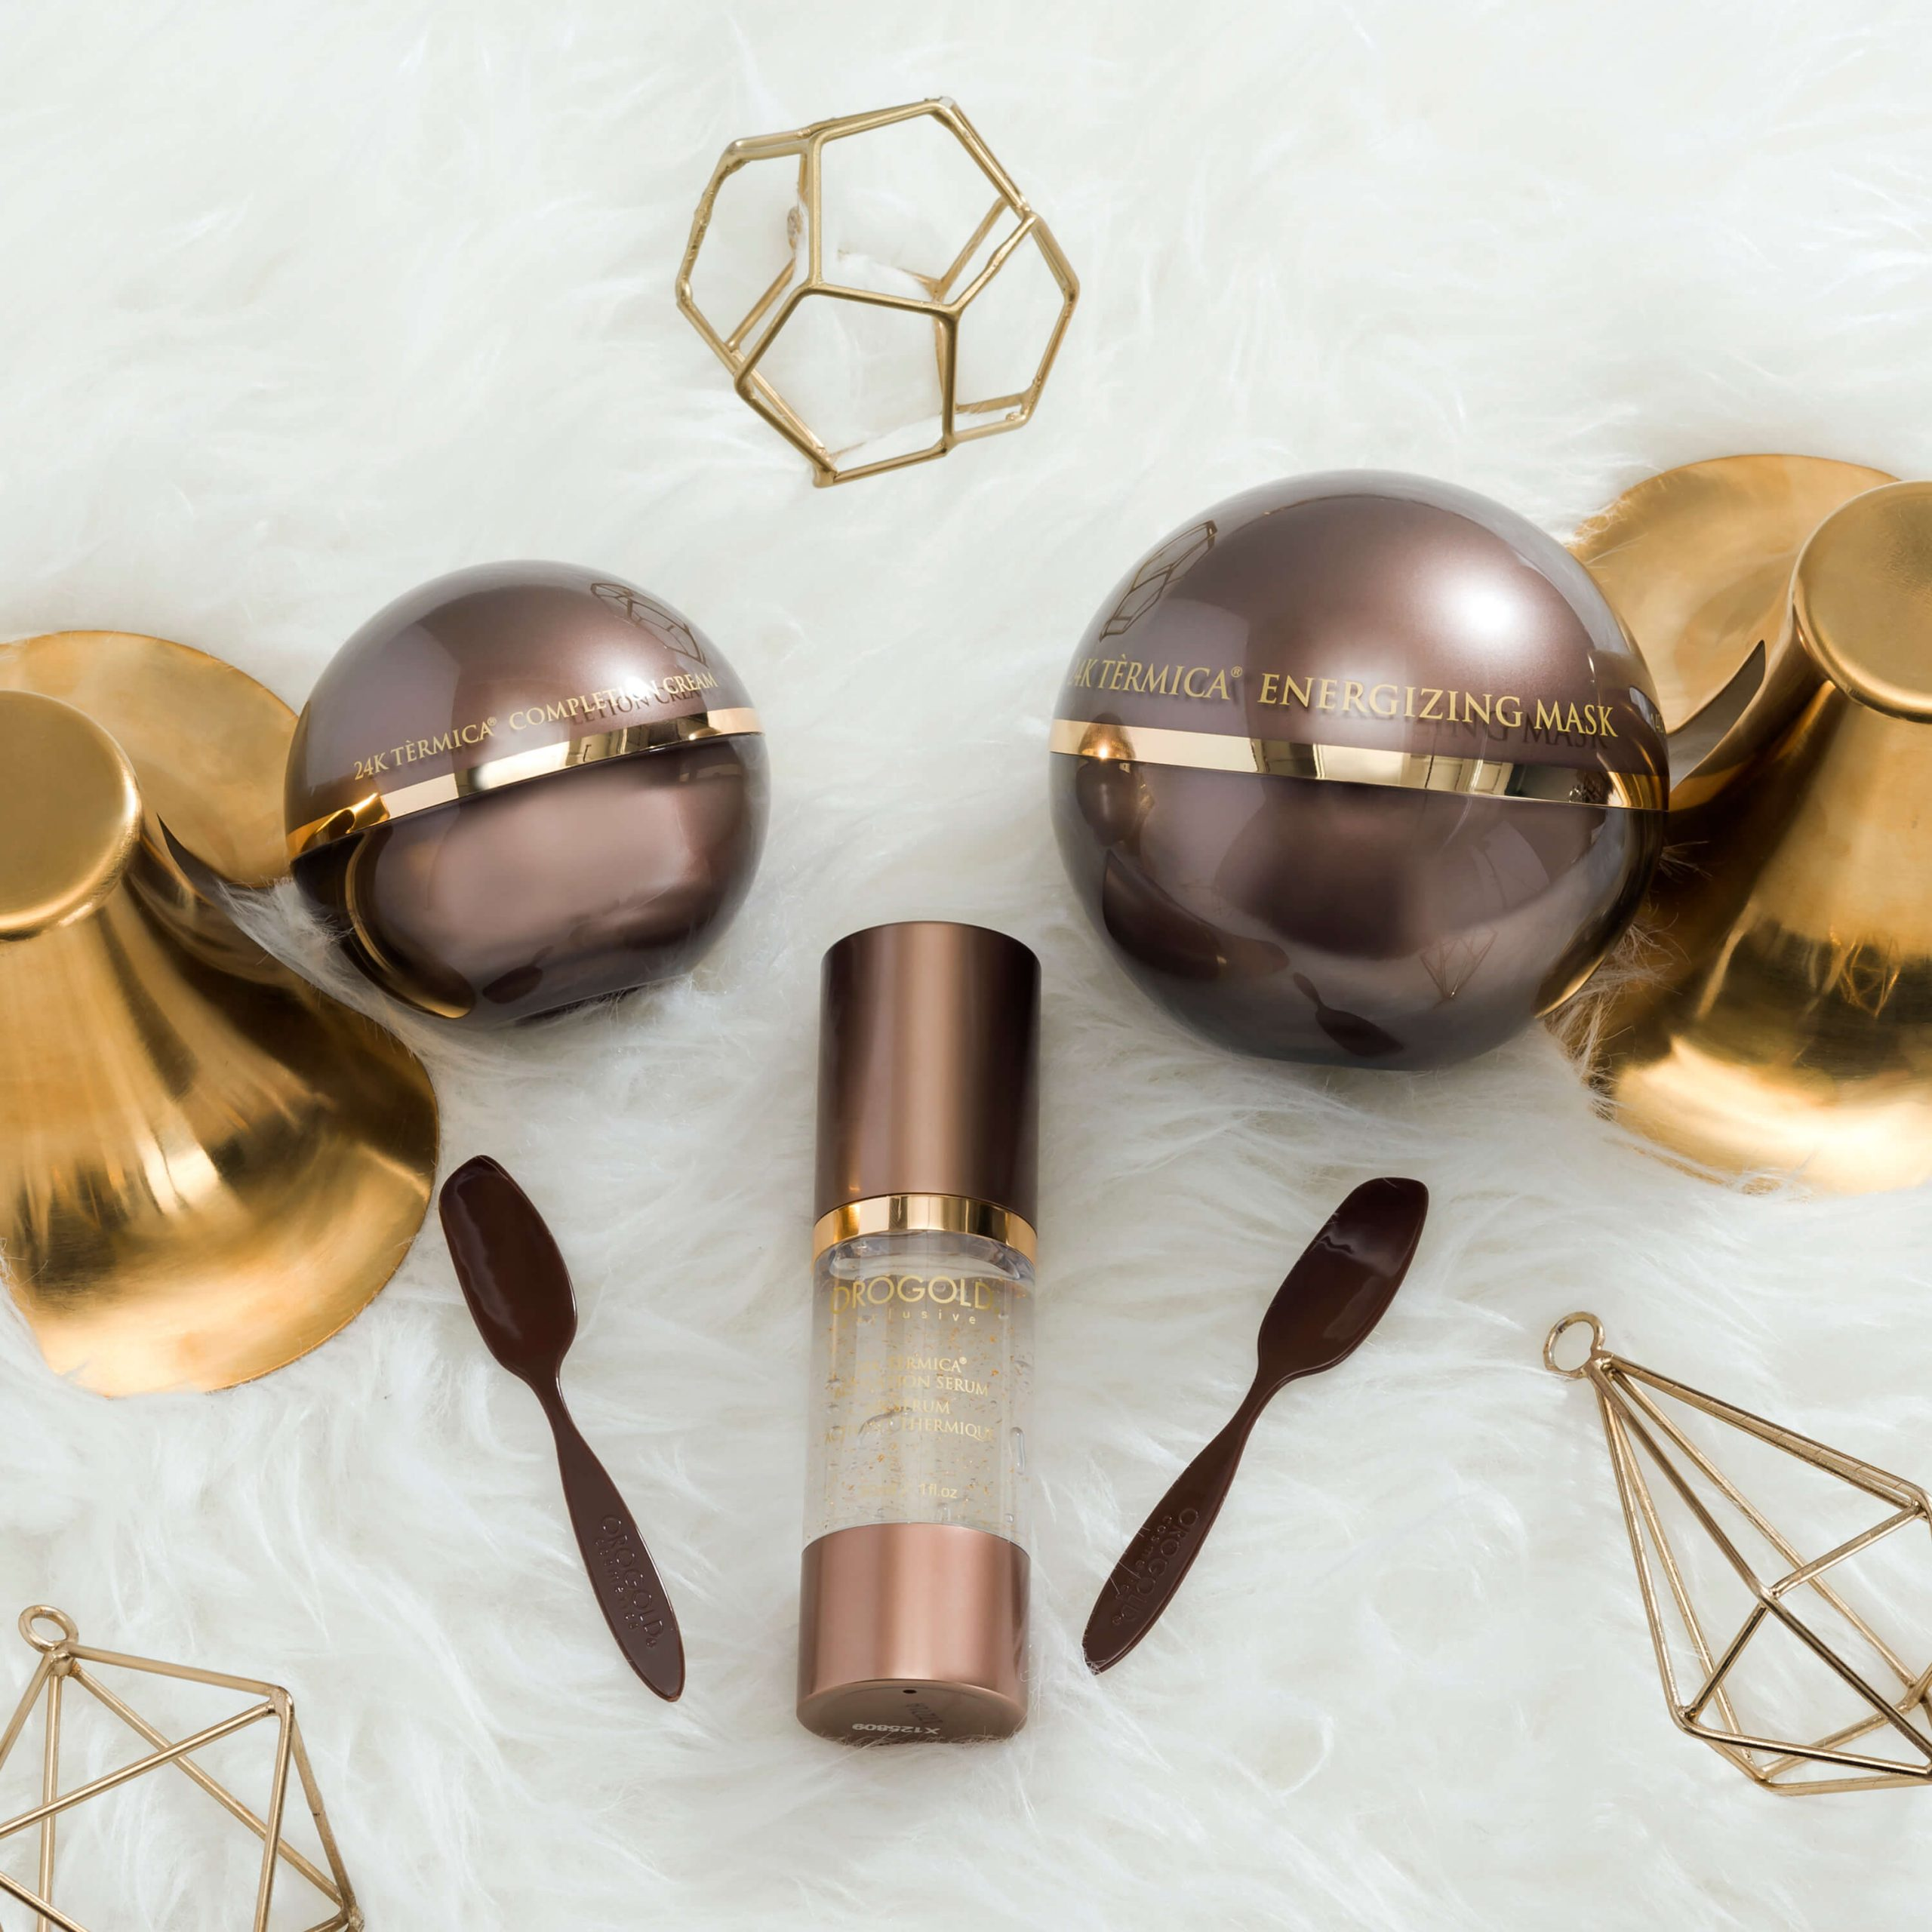 OROGOLD Face Mask and other products